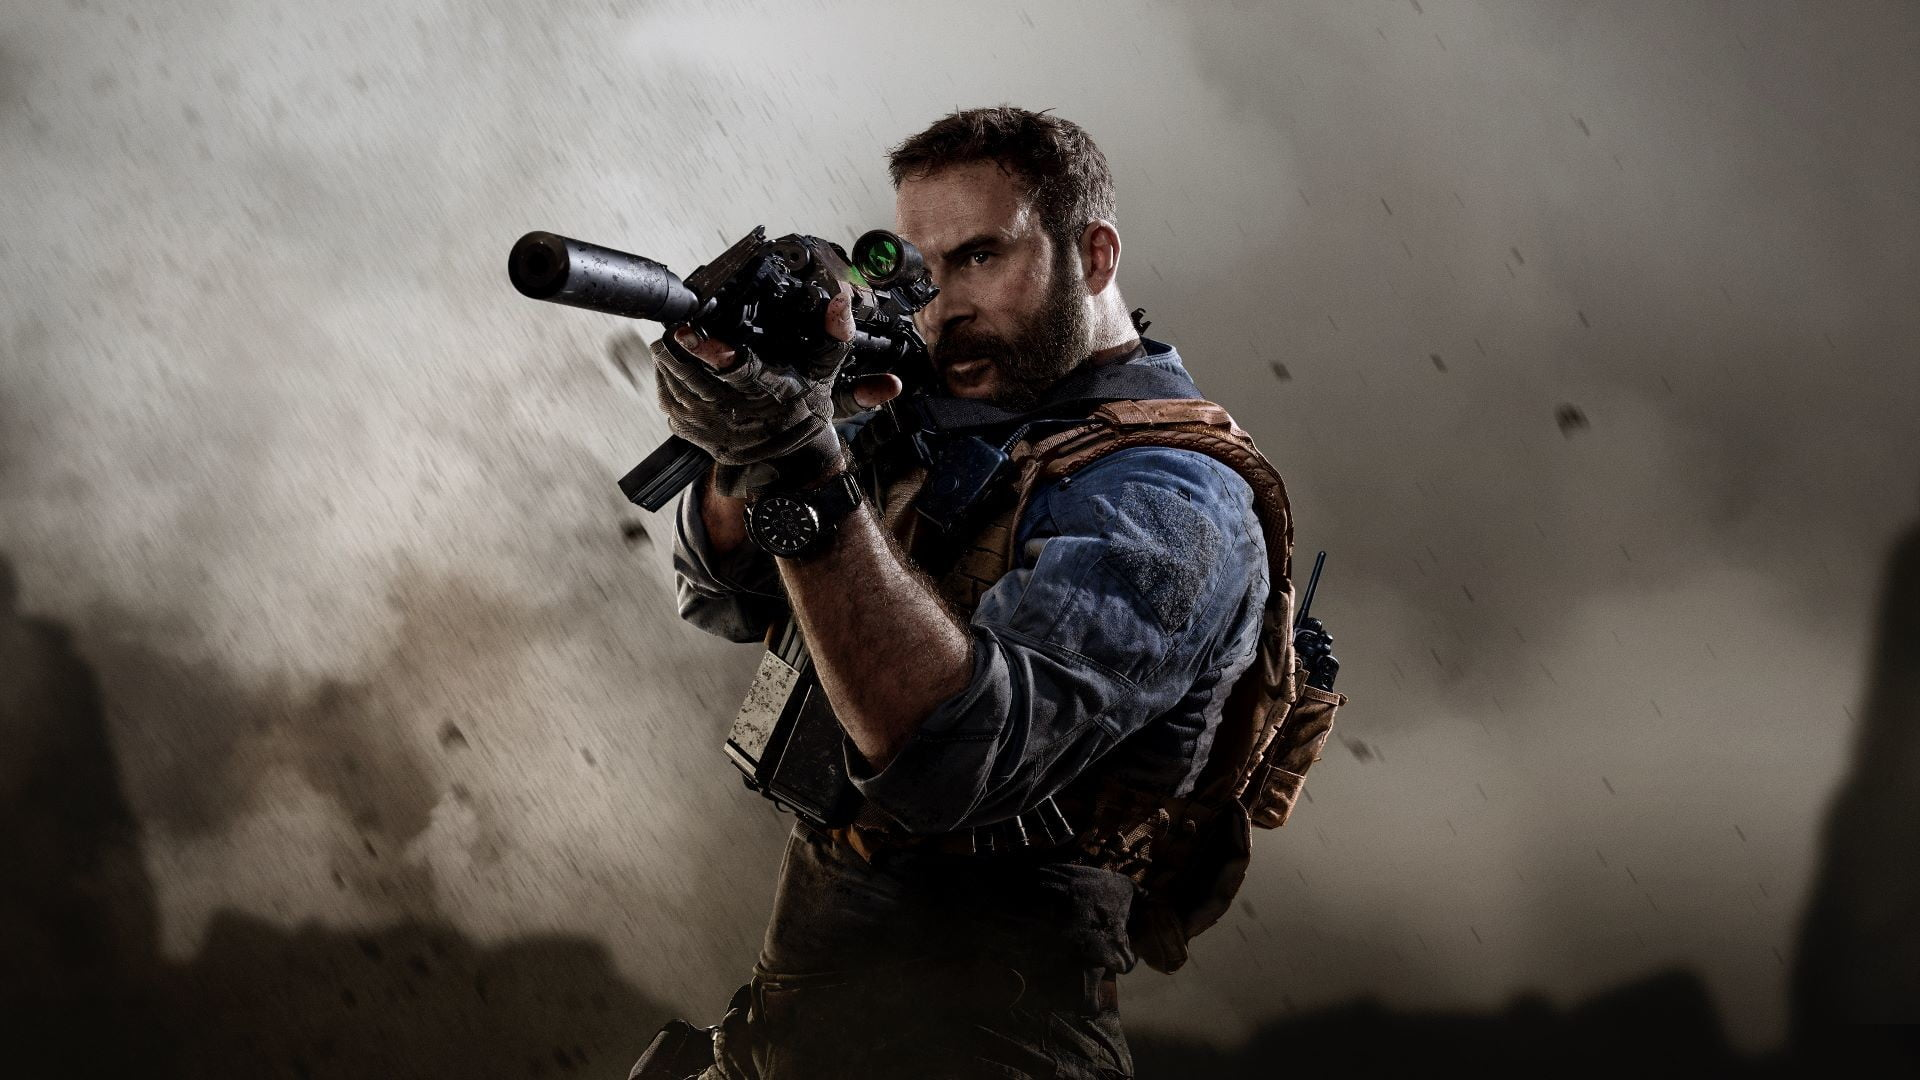 Activision unveils its post-launch content plans for Call of Duty: Modern Warfare